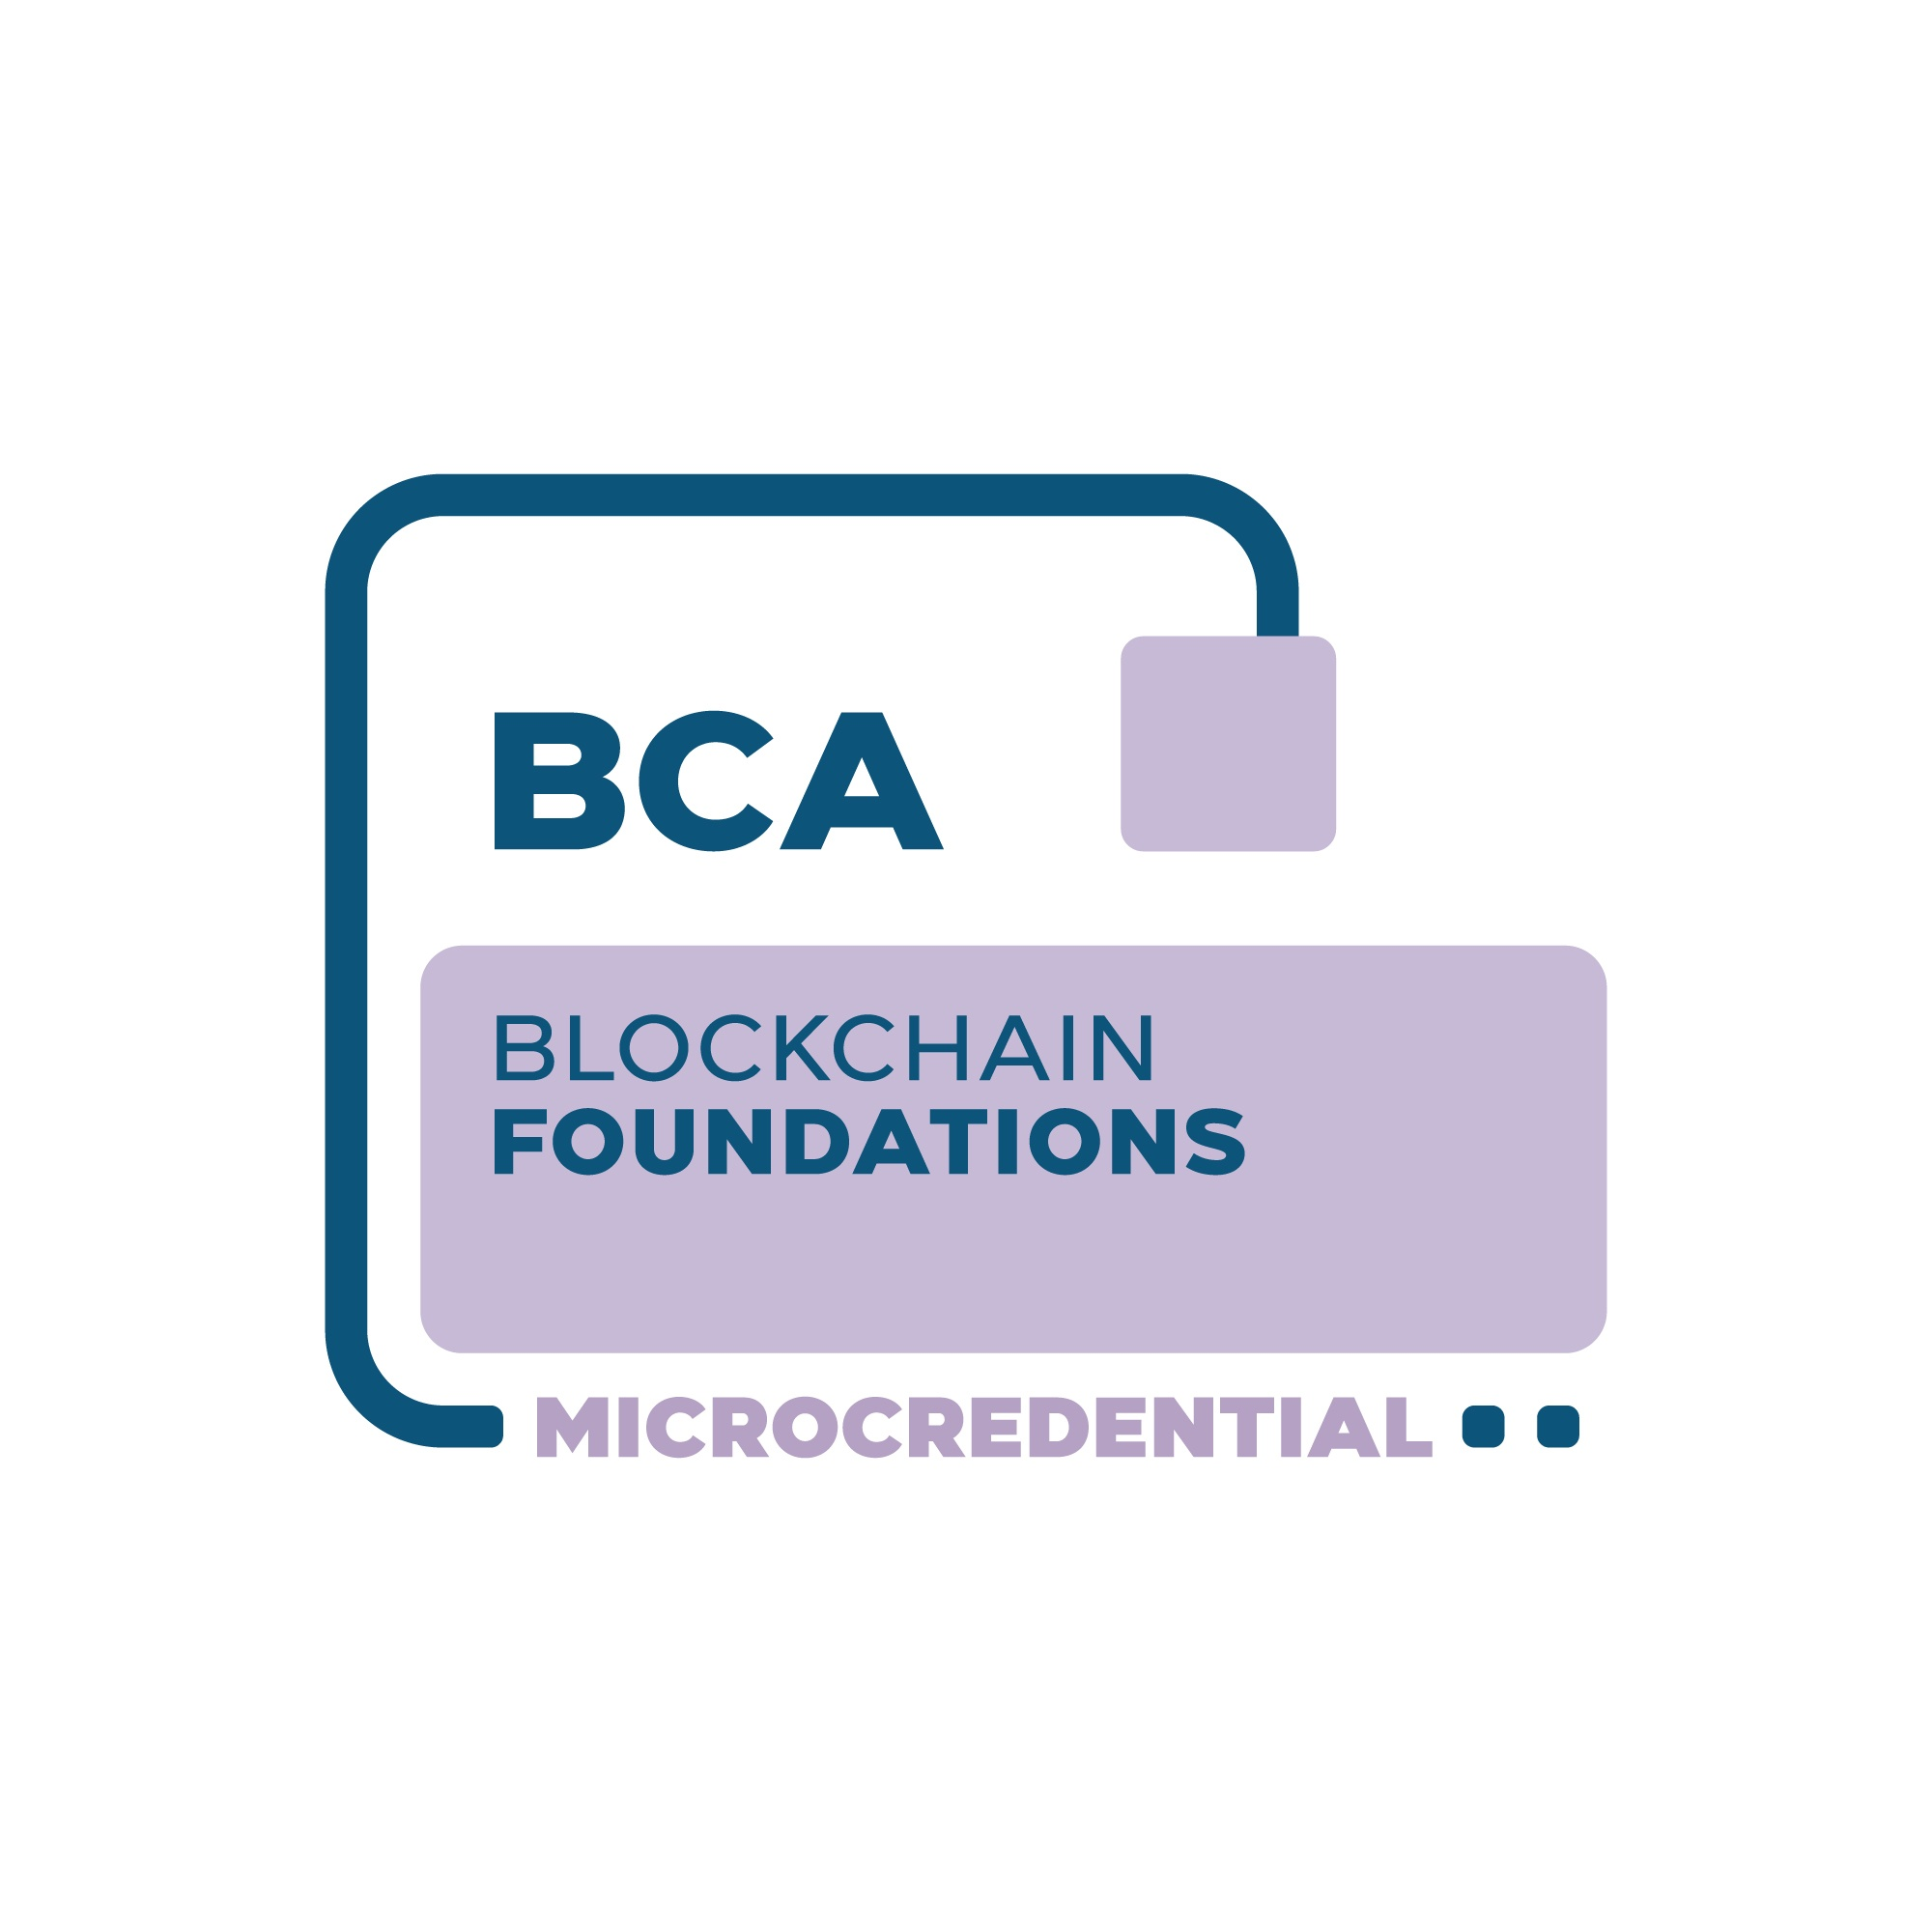 Blockchain Foundations Microcredential digital badge from the Blockchain Certification Association